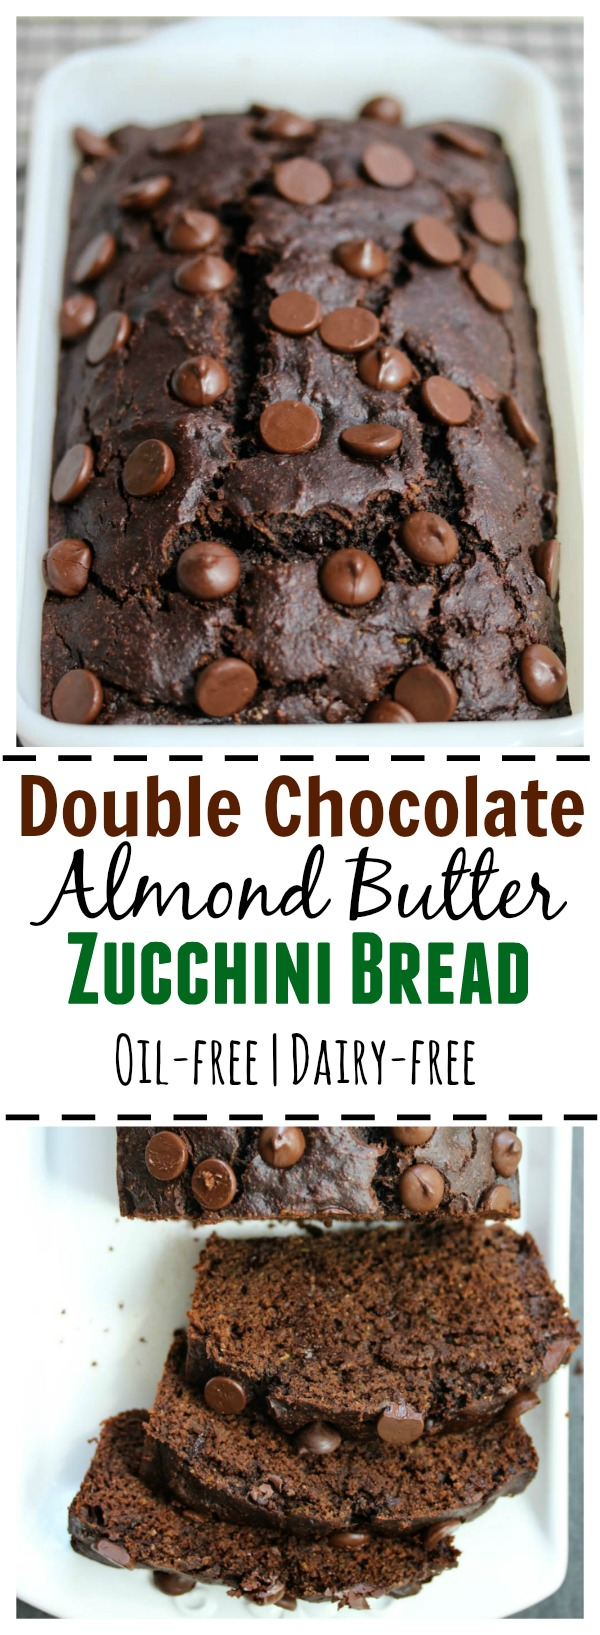 Double Chocolate Almond Butter Zucchini Bread; a nutritious, oil-free, dairy-free bread that tastes like dessert, yet is healthy enough for breakfast | dishingouthealth.com